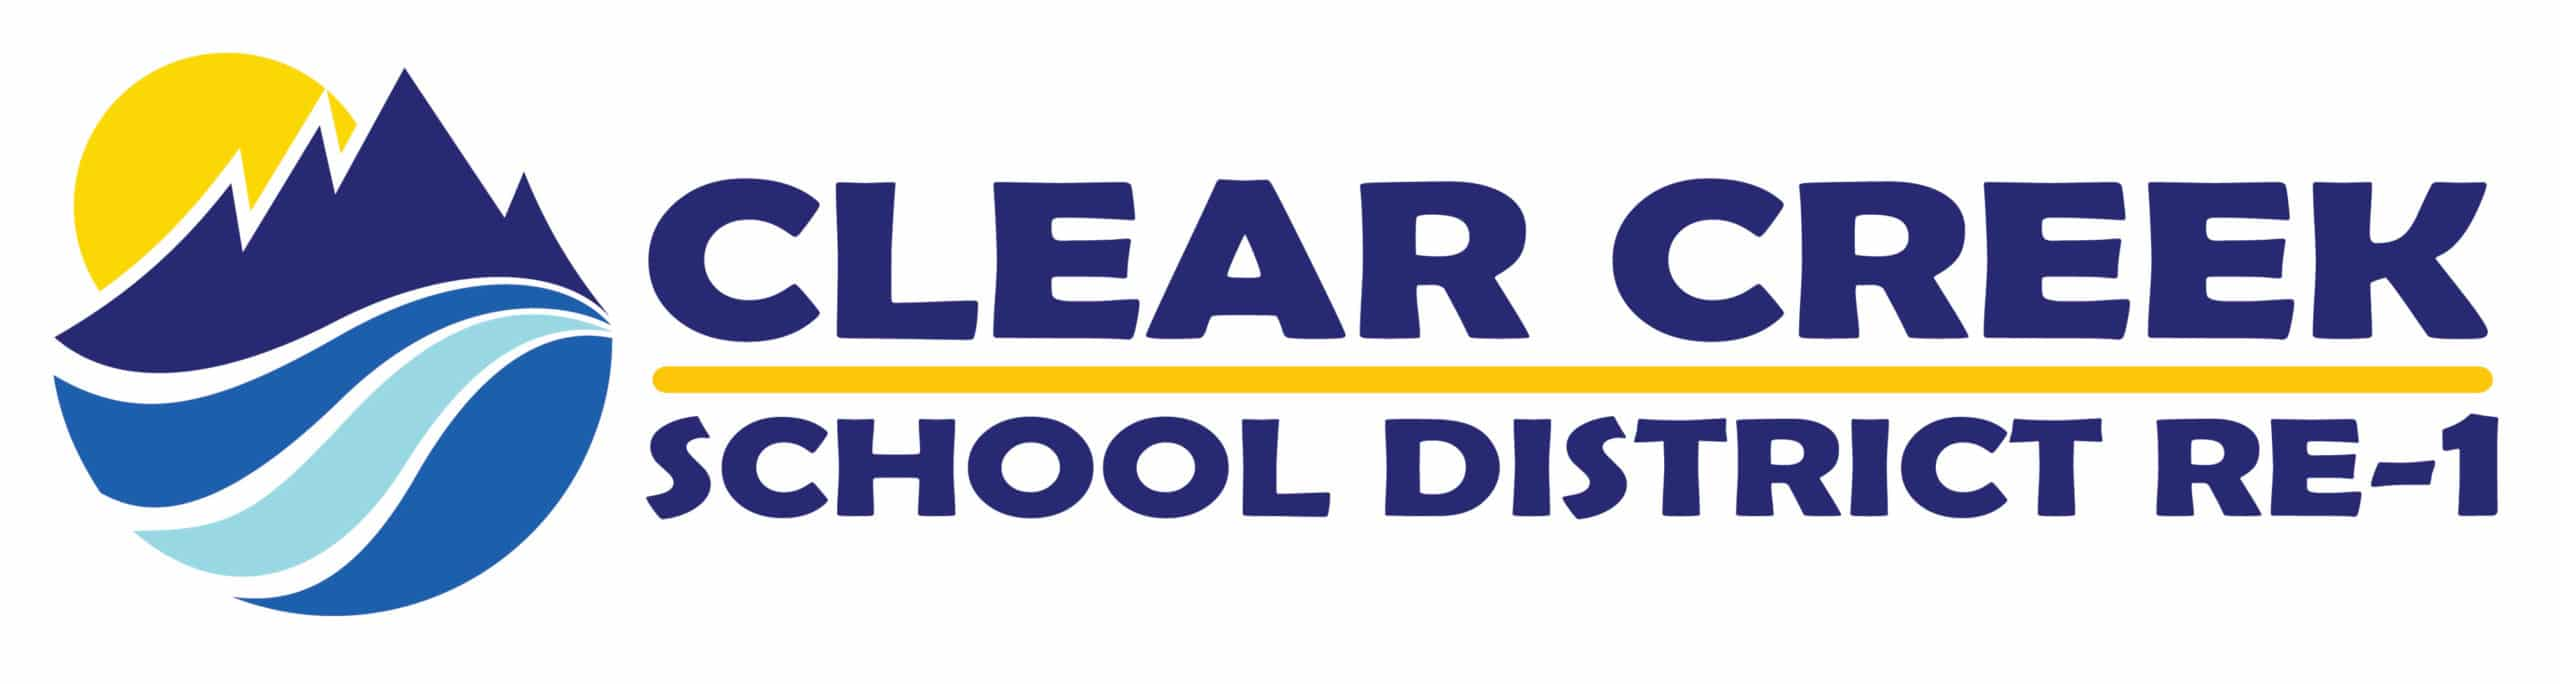 Clear Creek School District